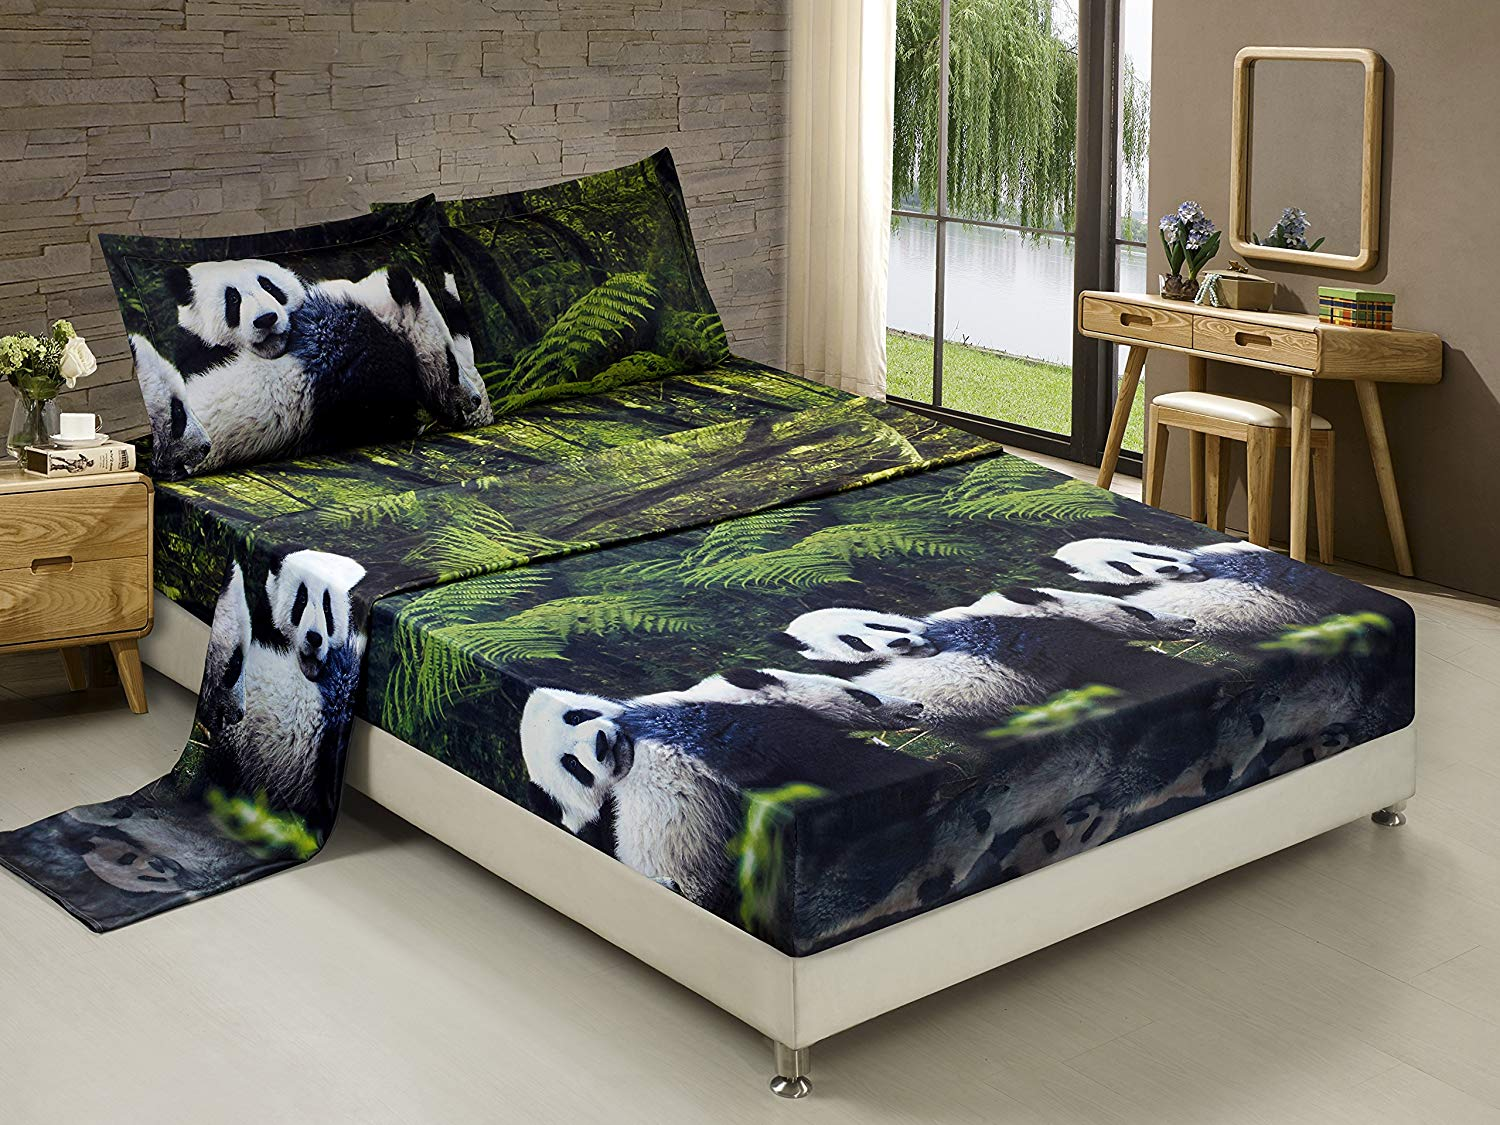 Printed Sheet Sets 3d Bed Sheet Set Queen 4 Piece 3d Panda Mom And Kids In Forest Printed Sheet Set Queen Size Y29 Soft Breathable Hypoallergenic Fade Resistant